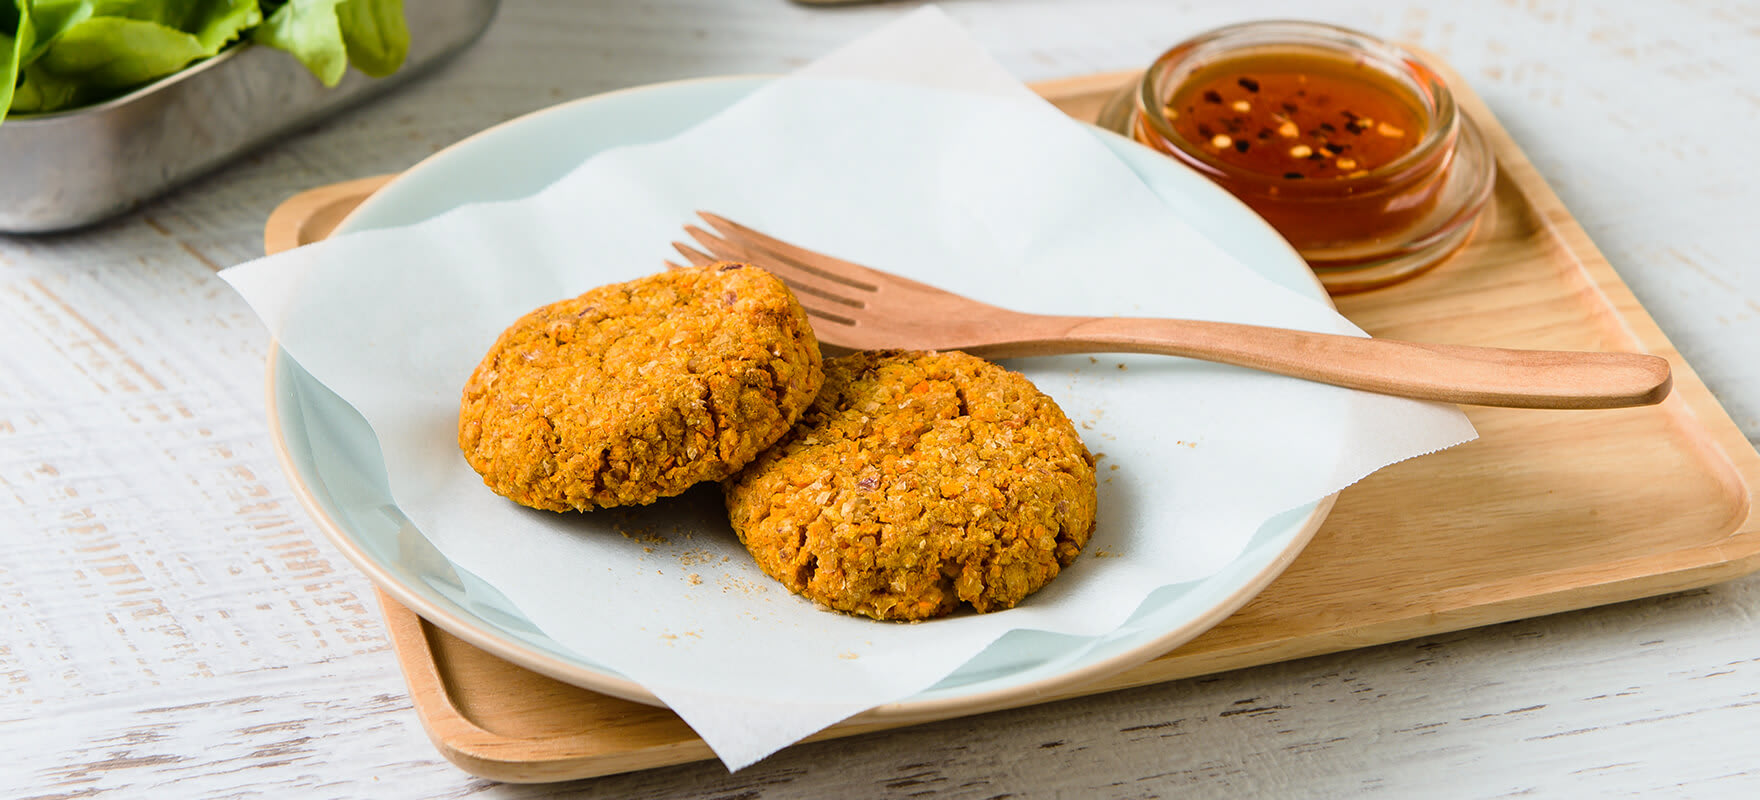 Baked carrot & chickpea patties image 1